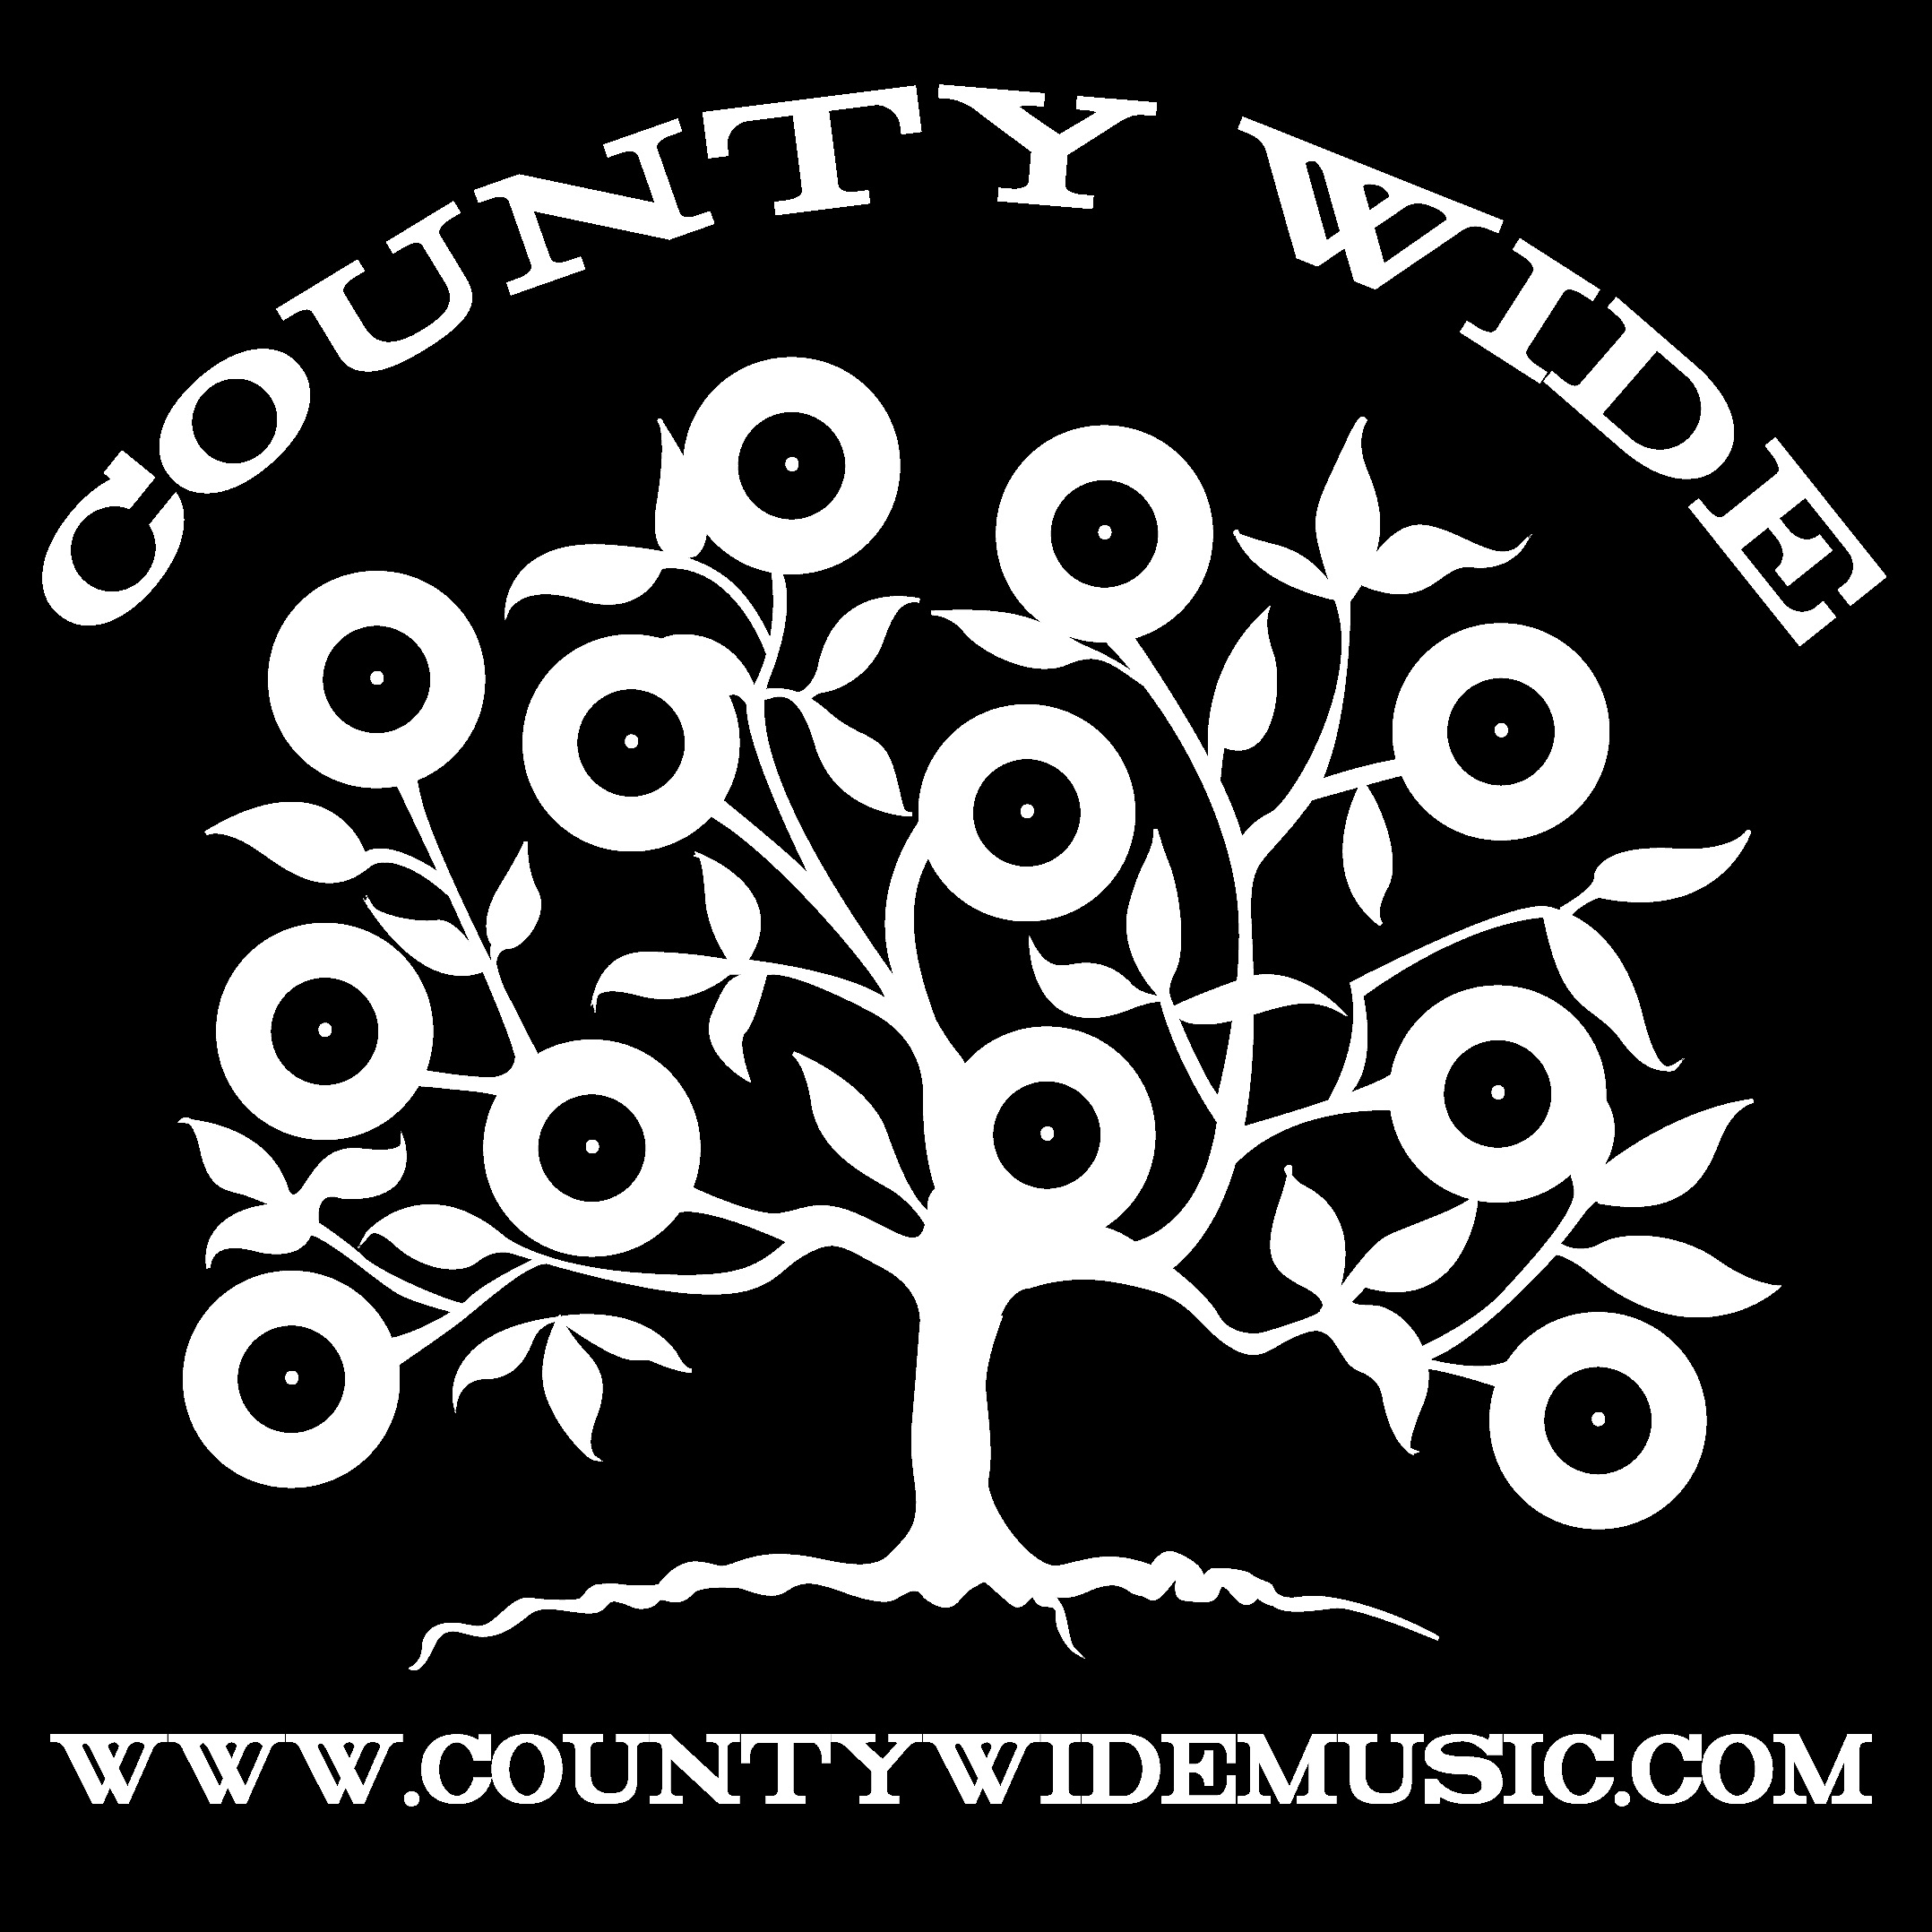 County Wide Music